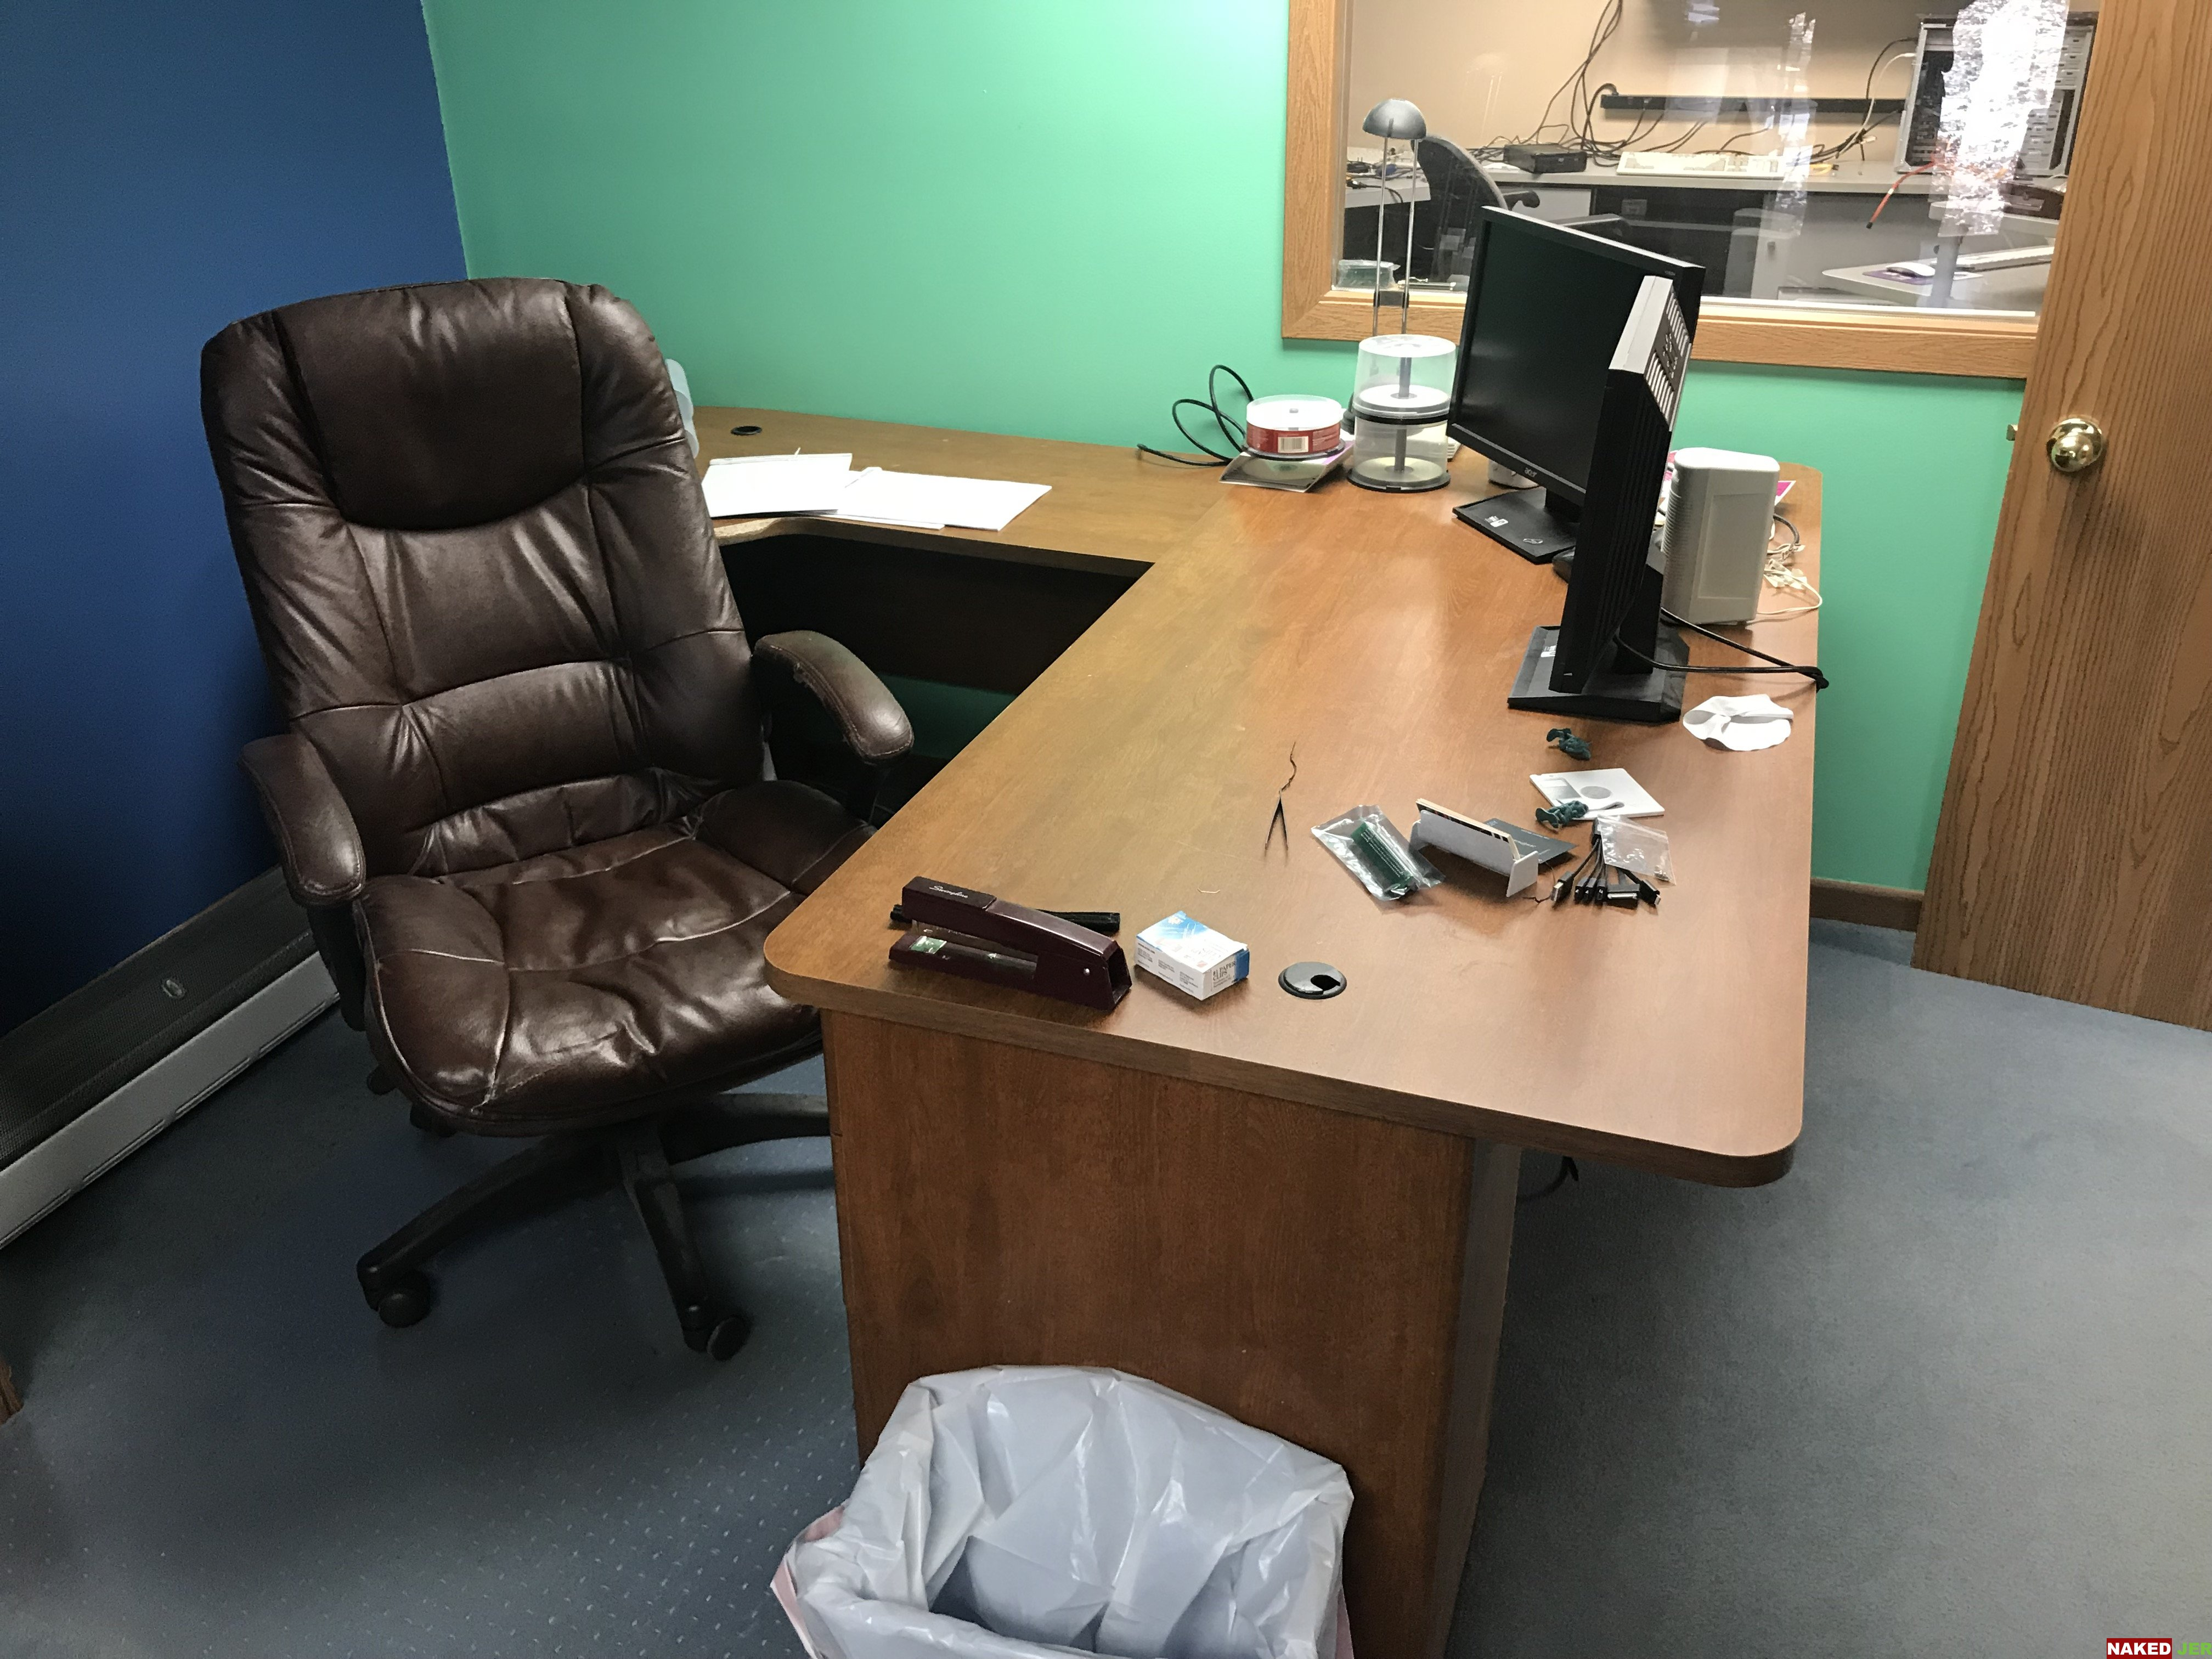 L Shaped desk and office chair SOLD